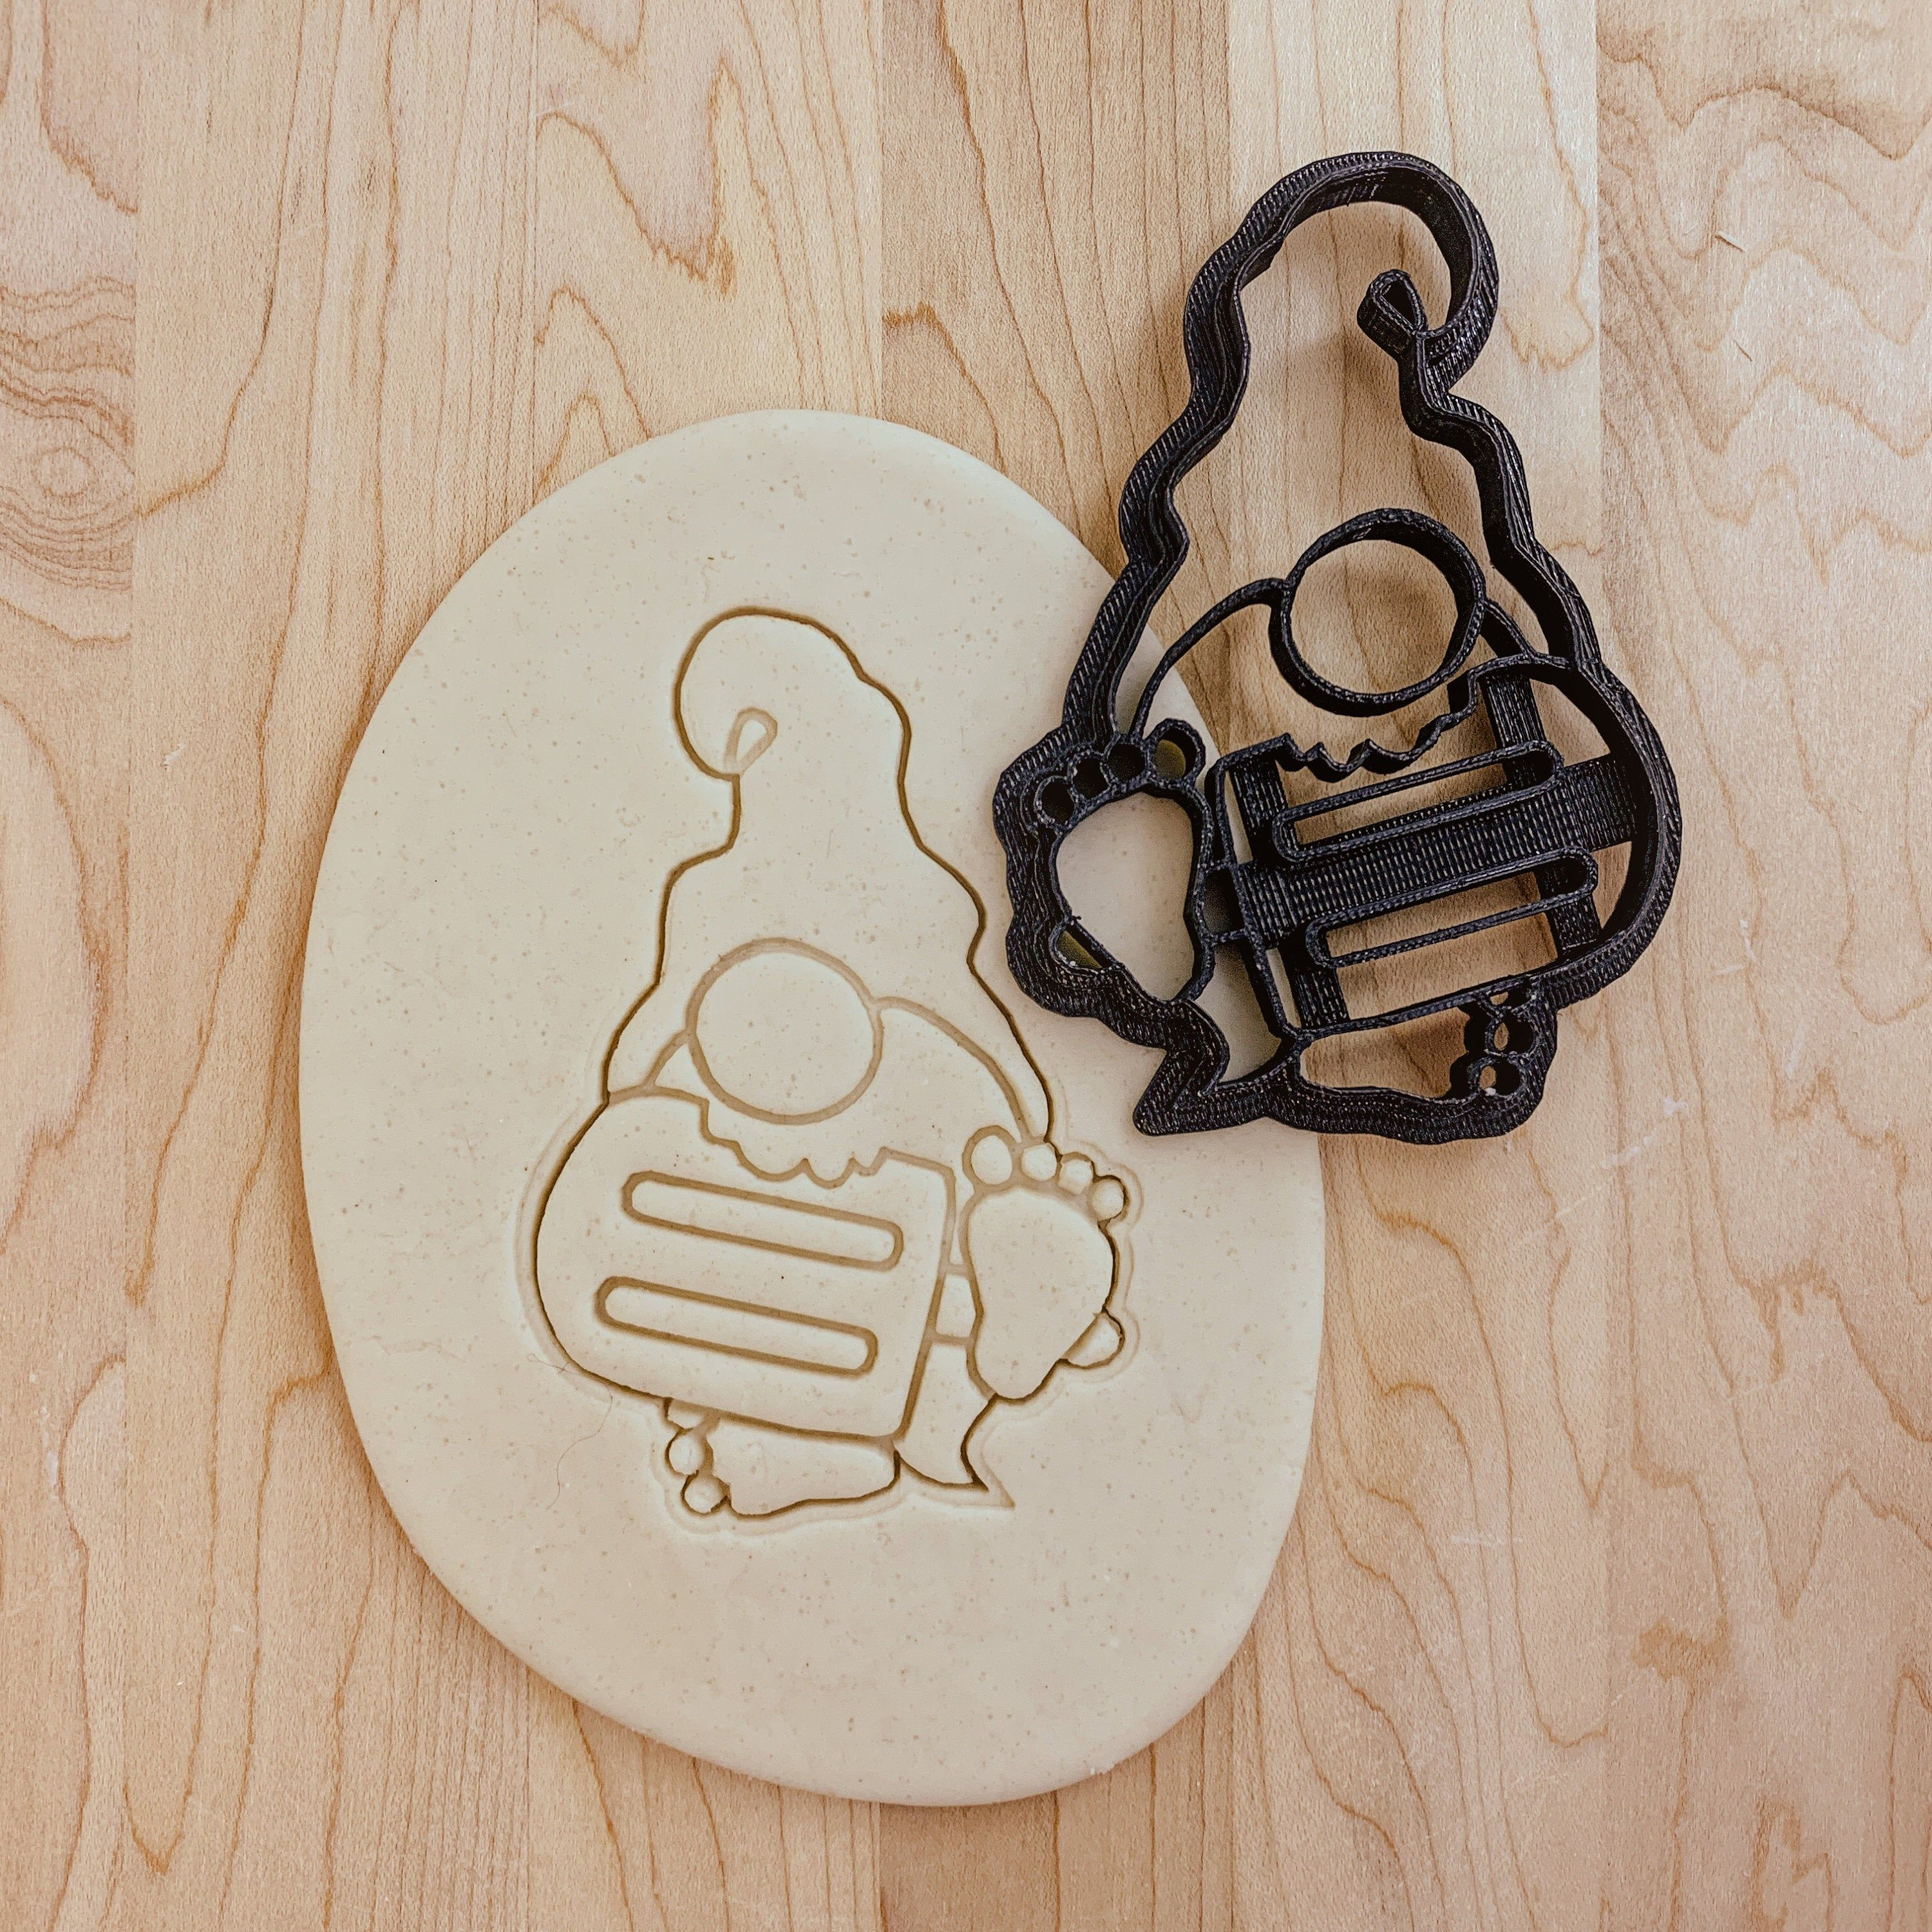 Pin On Cookie Cutters